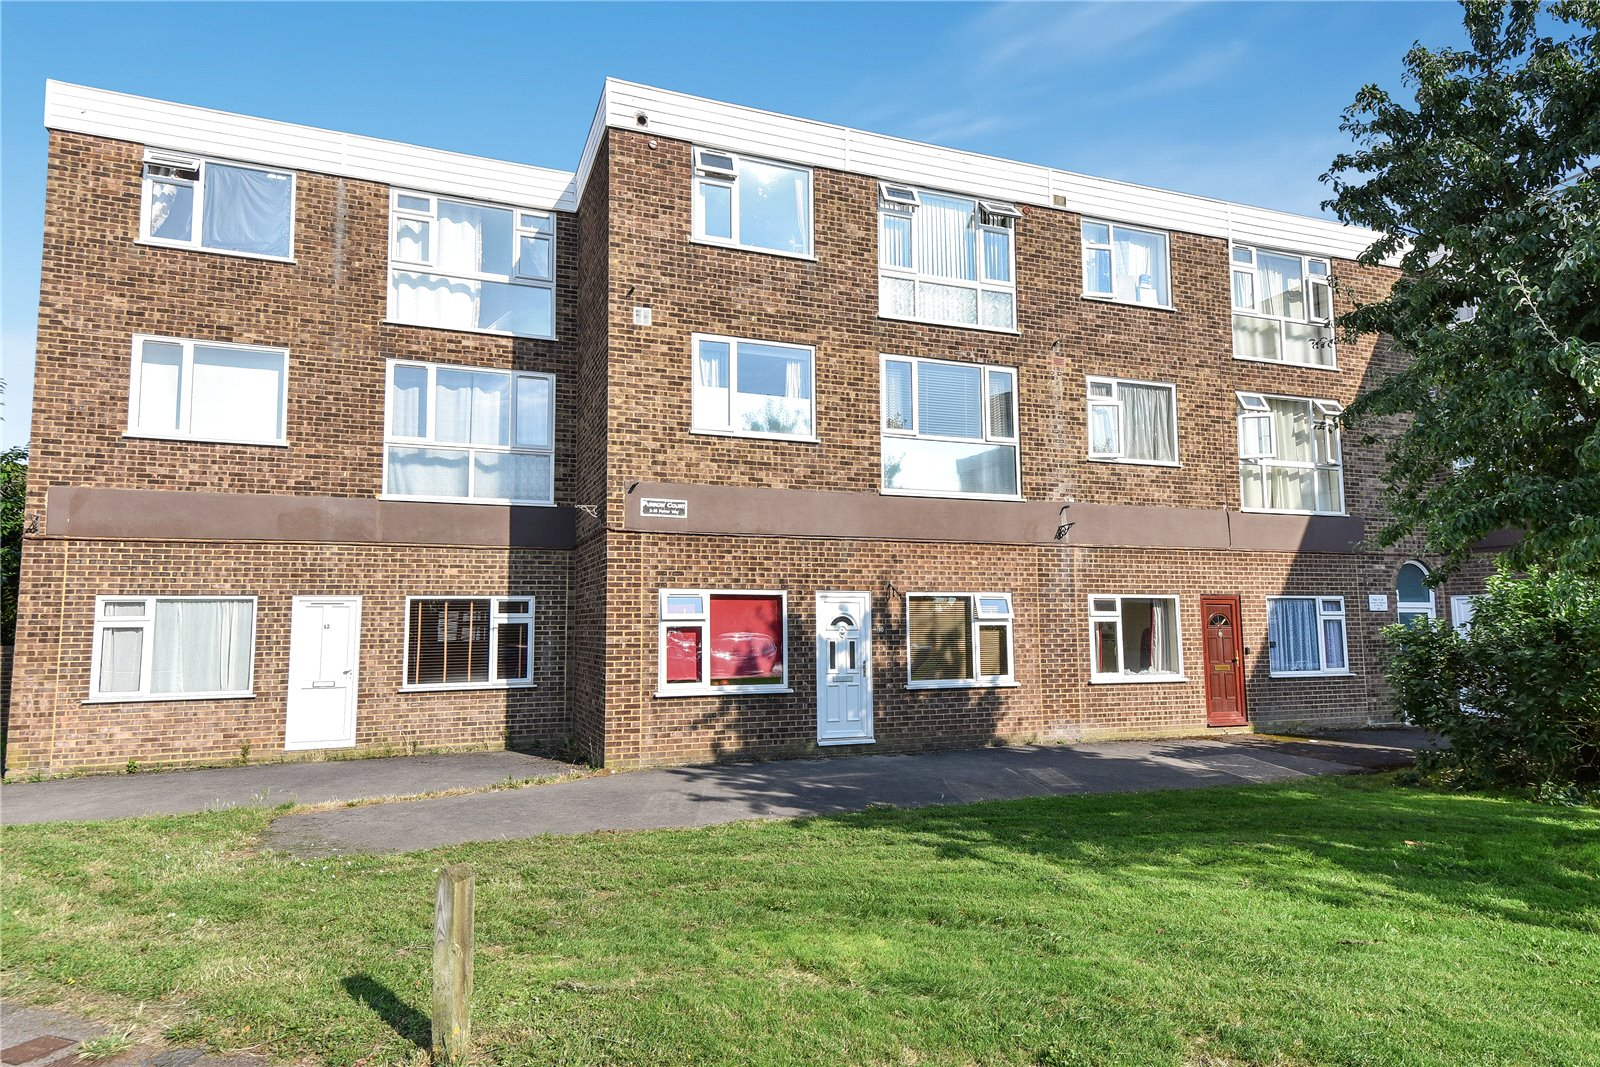 2 Bedrooms Apartment Flat for sale in Furrow Way, Maidenhead, Berkshire, SL6